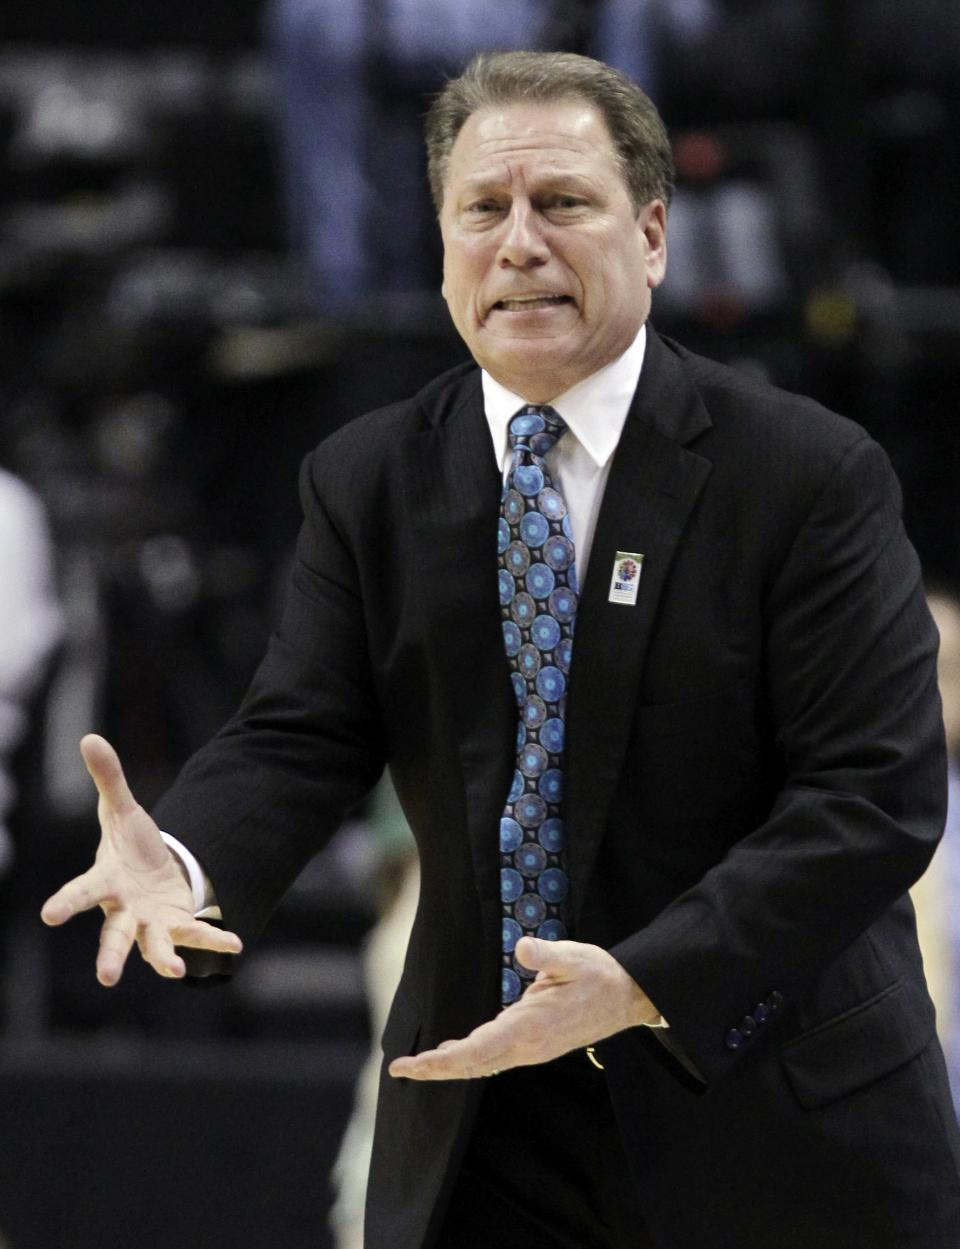 Michigan State head coach Tom Izzo directs his team in the first half of an NCAA college basketball game against Iowa in the second round of the Big Ten Conference tournament in Indianapolis, Friday, March 9, 2012. (AP Photo/Michael Conroy)